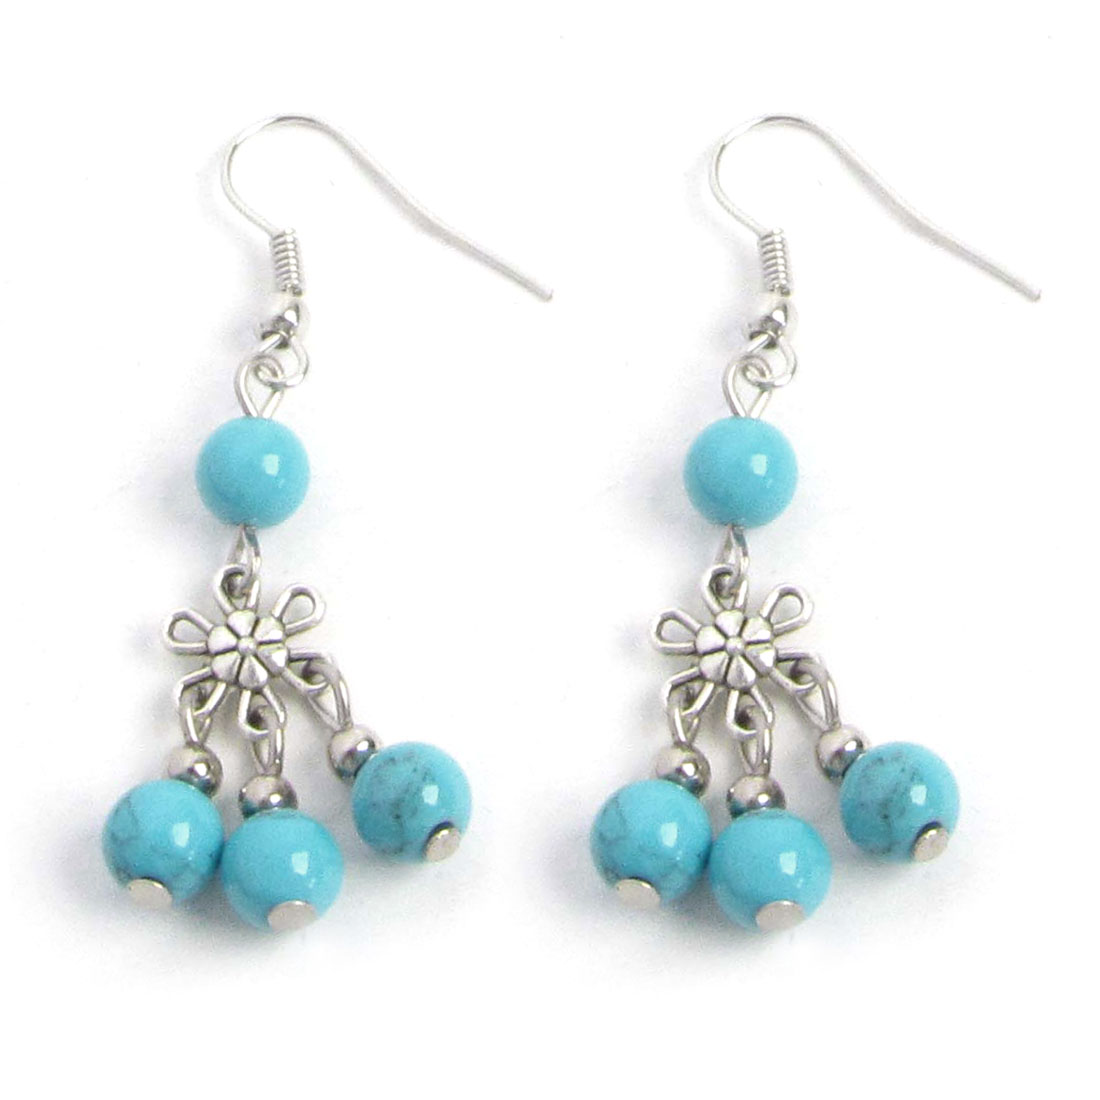 Woman Party Shopping Blue Beads Detial Fish Hook Earrings Silver Tone Pair